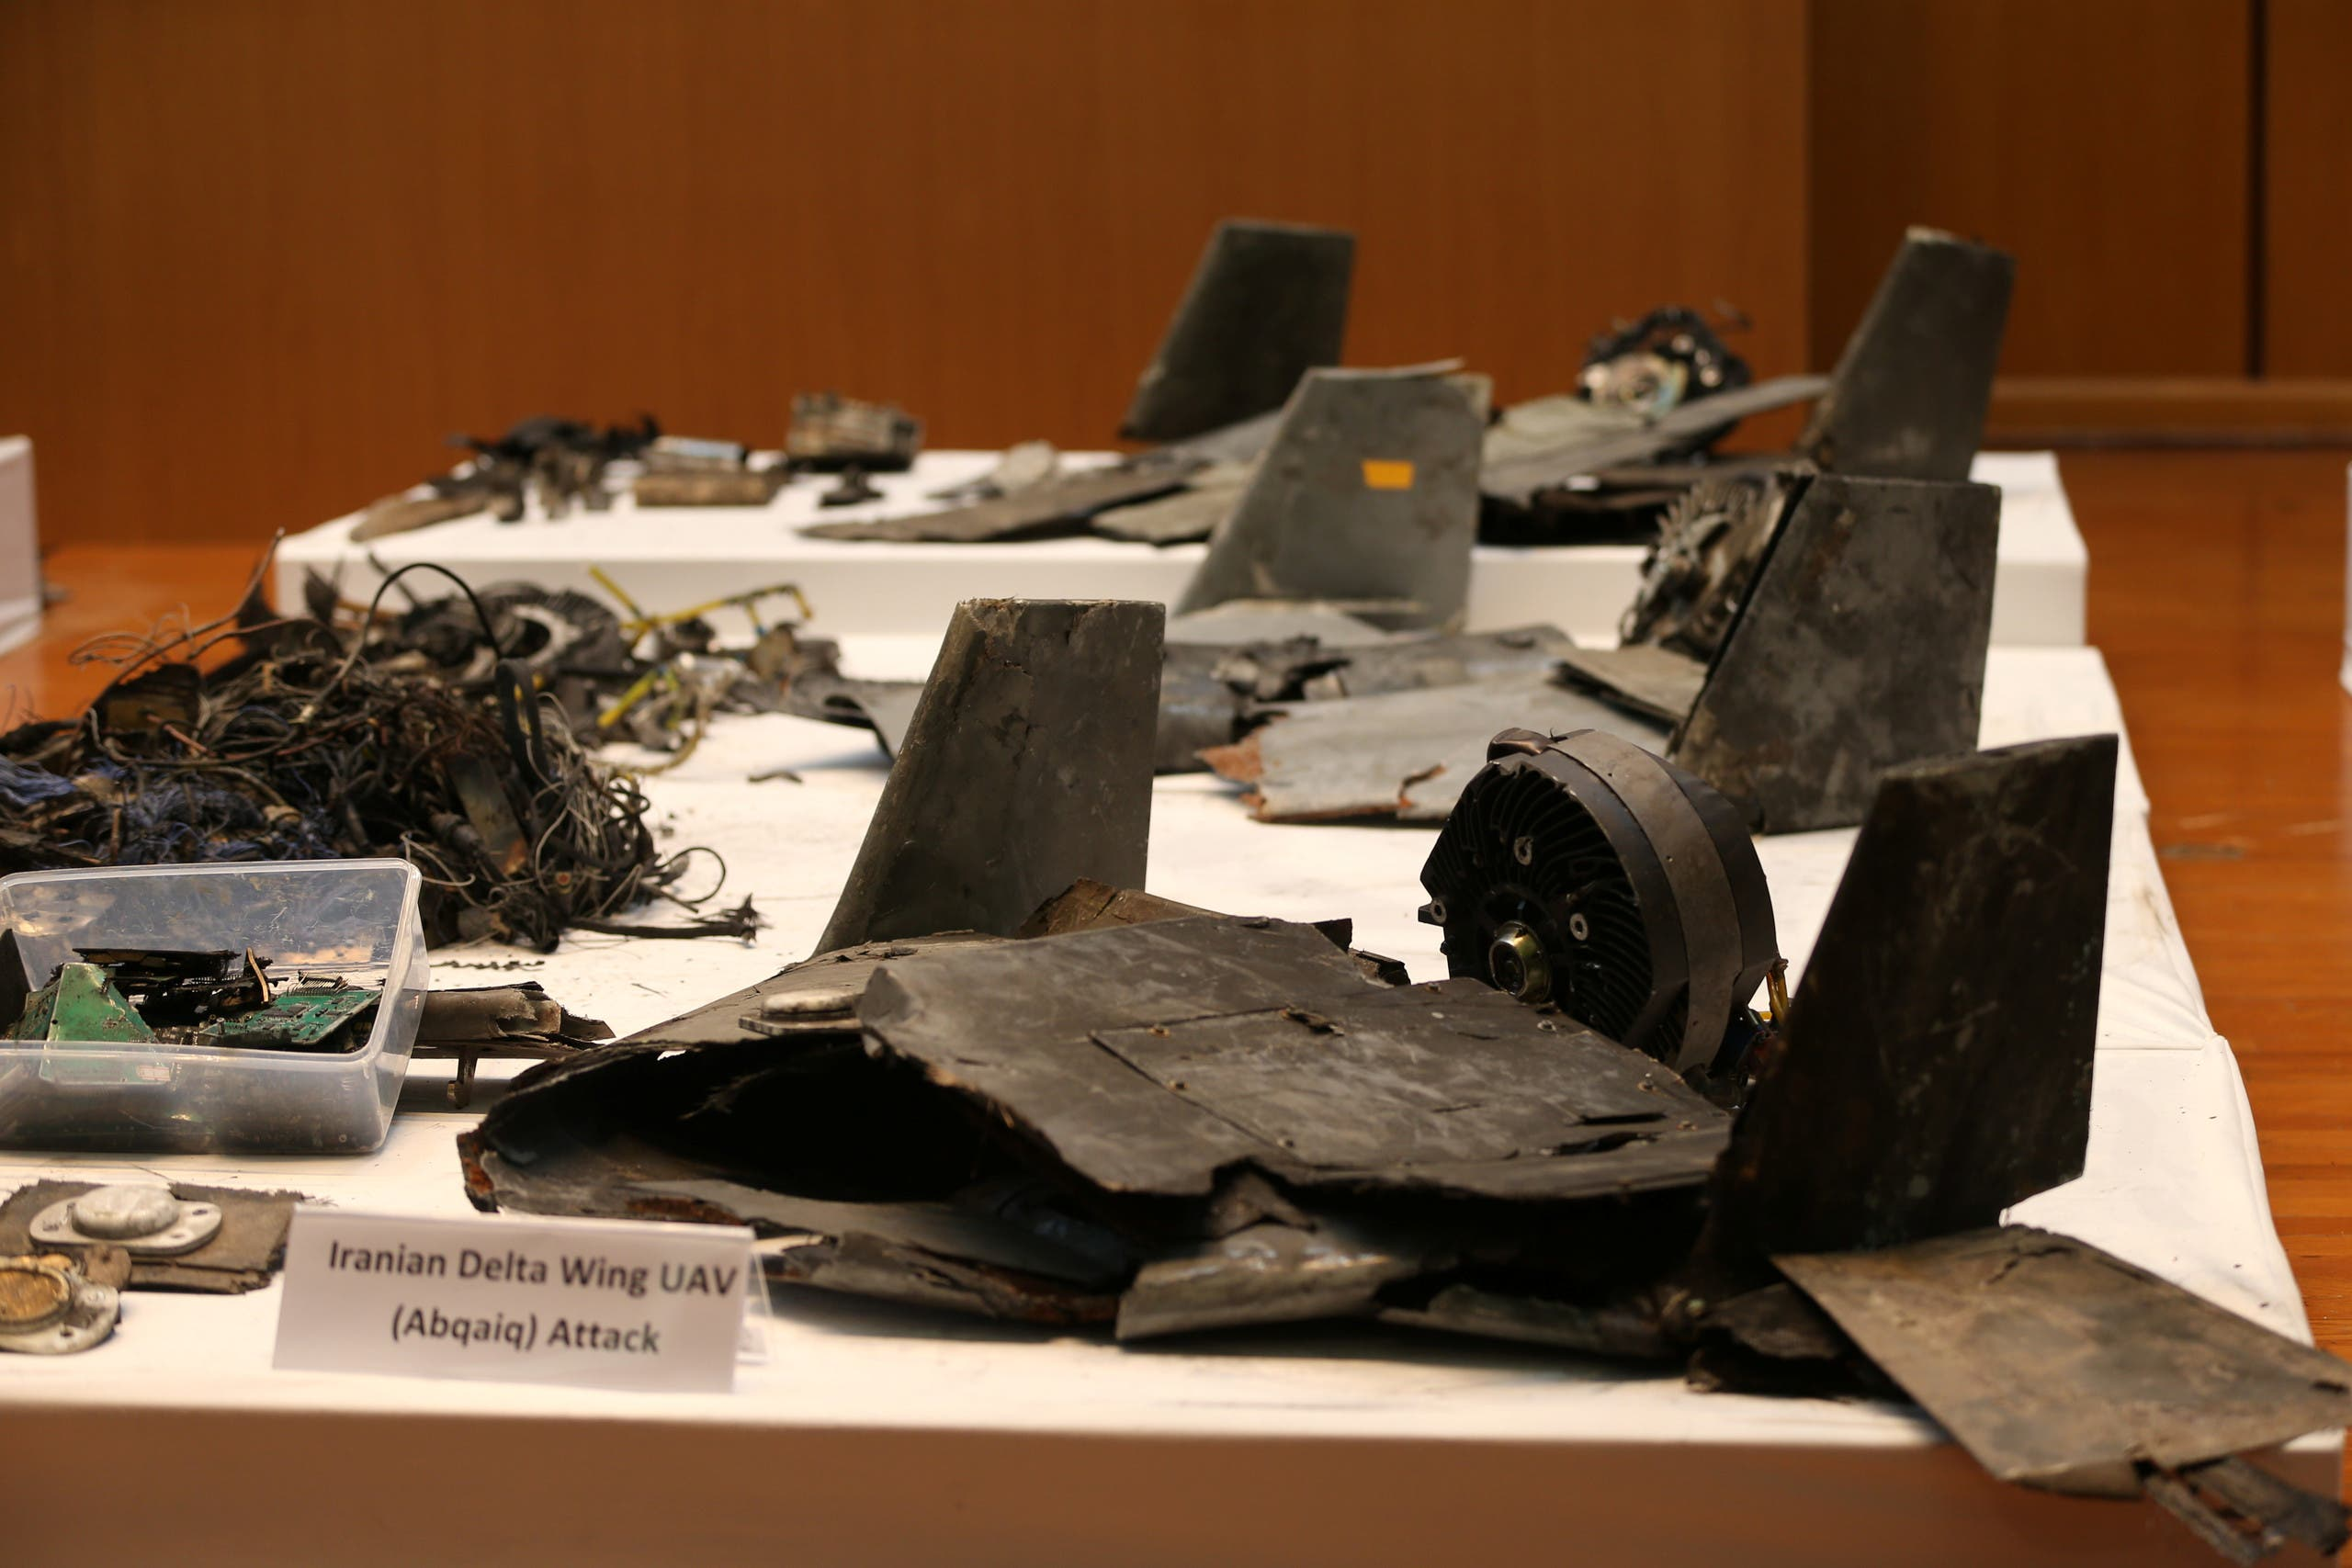 Saudi Arabia Showcases Wreckage Of Drones And Missiles Used In Abqaiq–Khurais Attack (Photos)